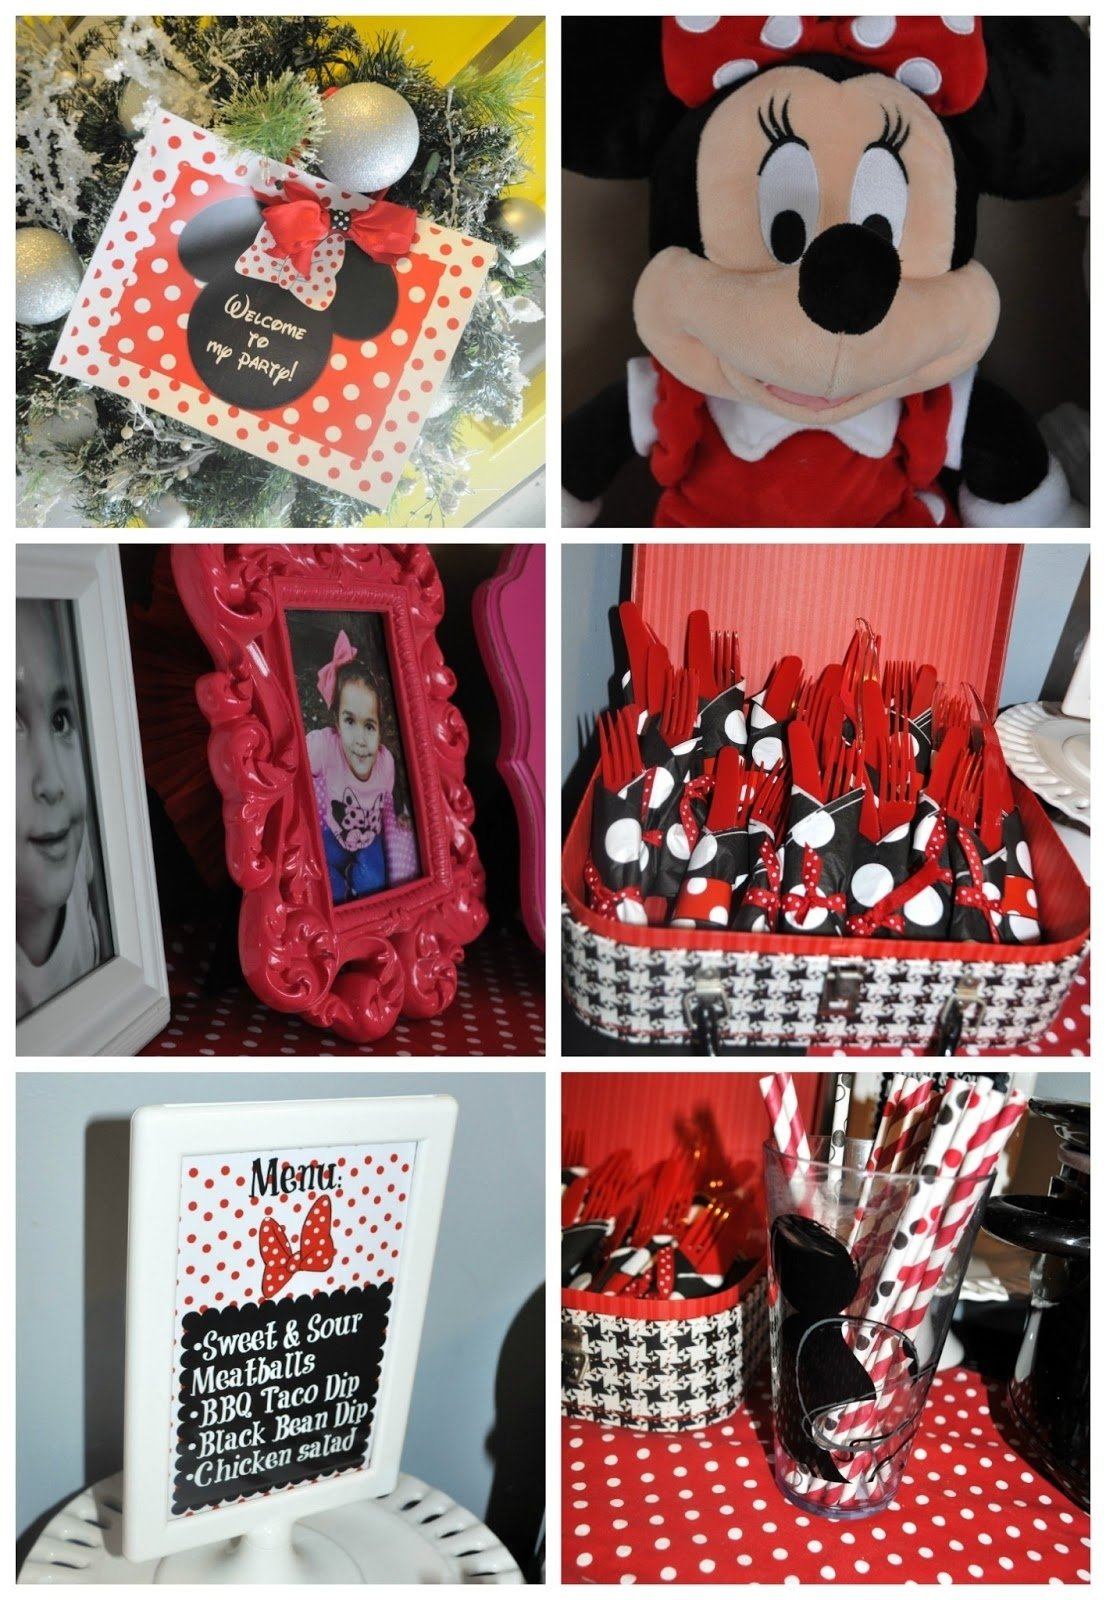 10 Perfect Mickey And Minnie Mouse Party Ideas modern minnie mouse party decor favors pretty real 1 2020